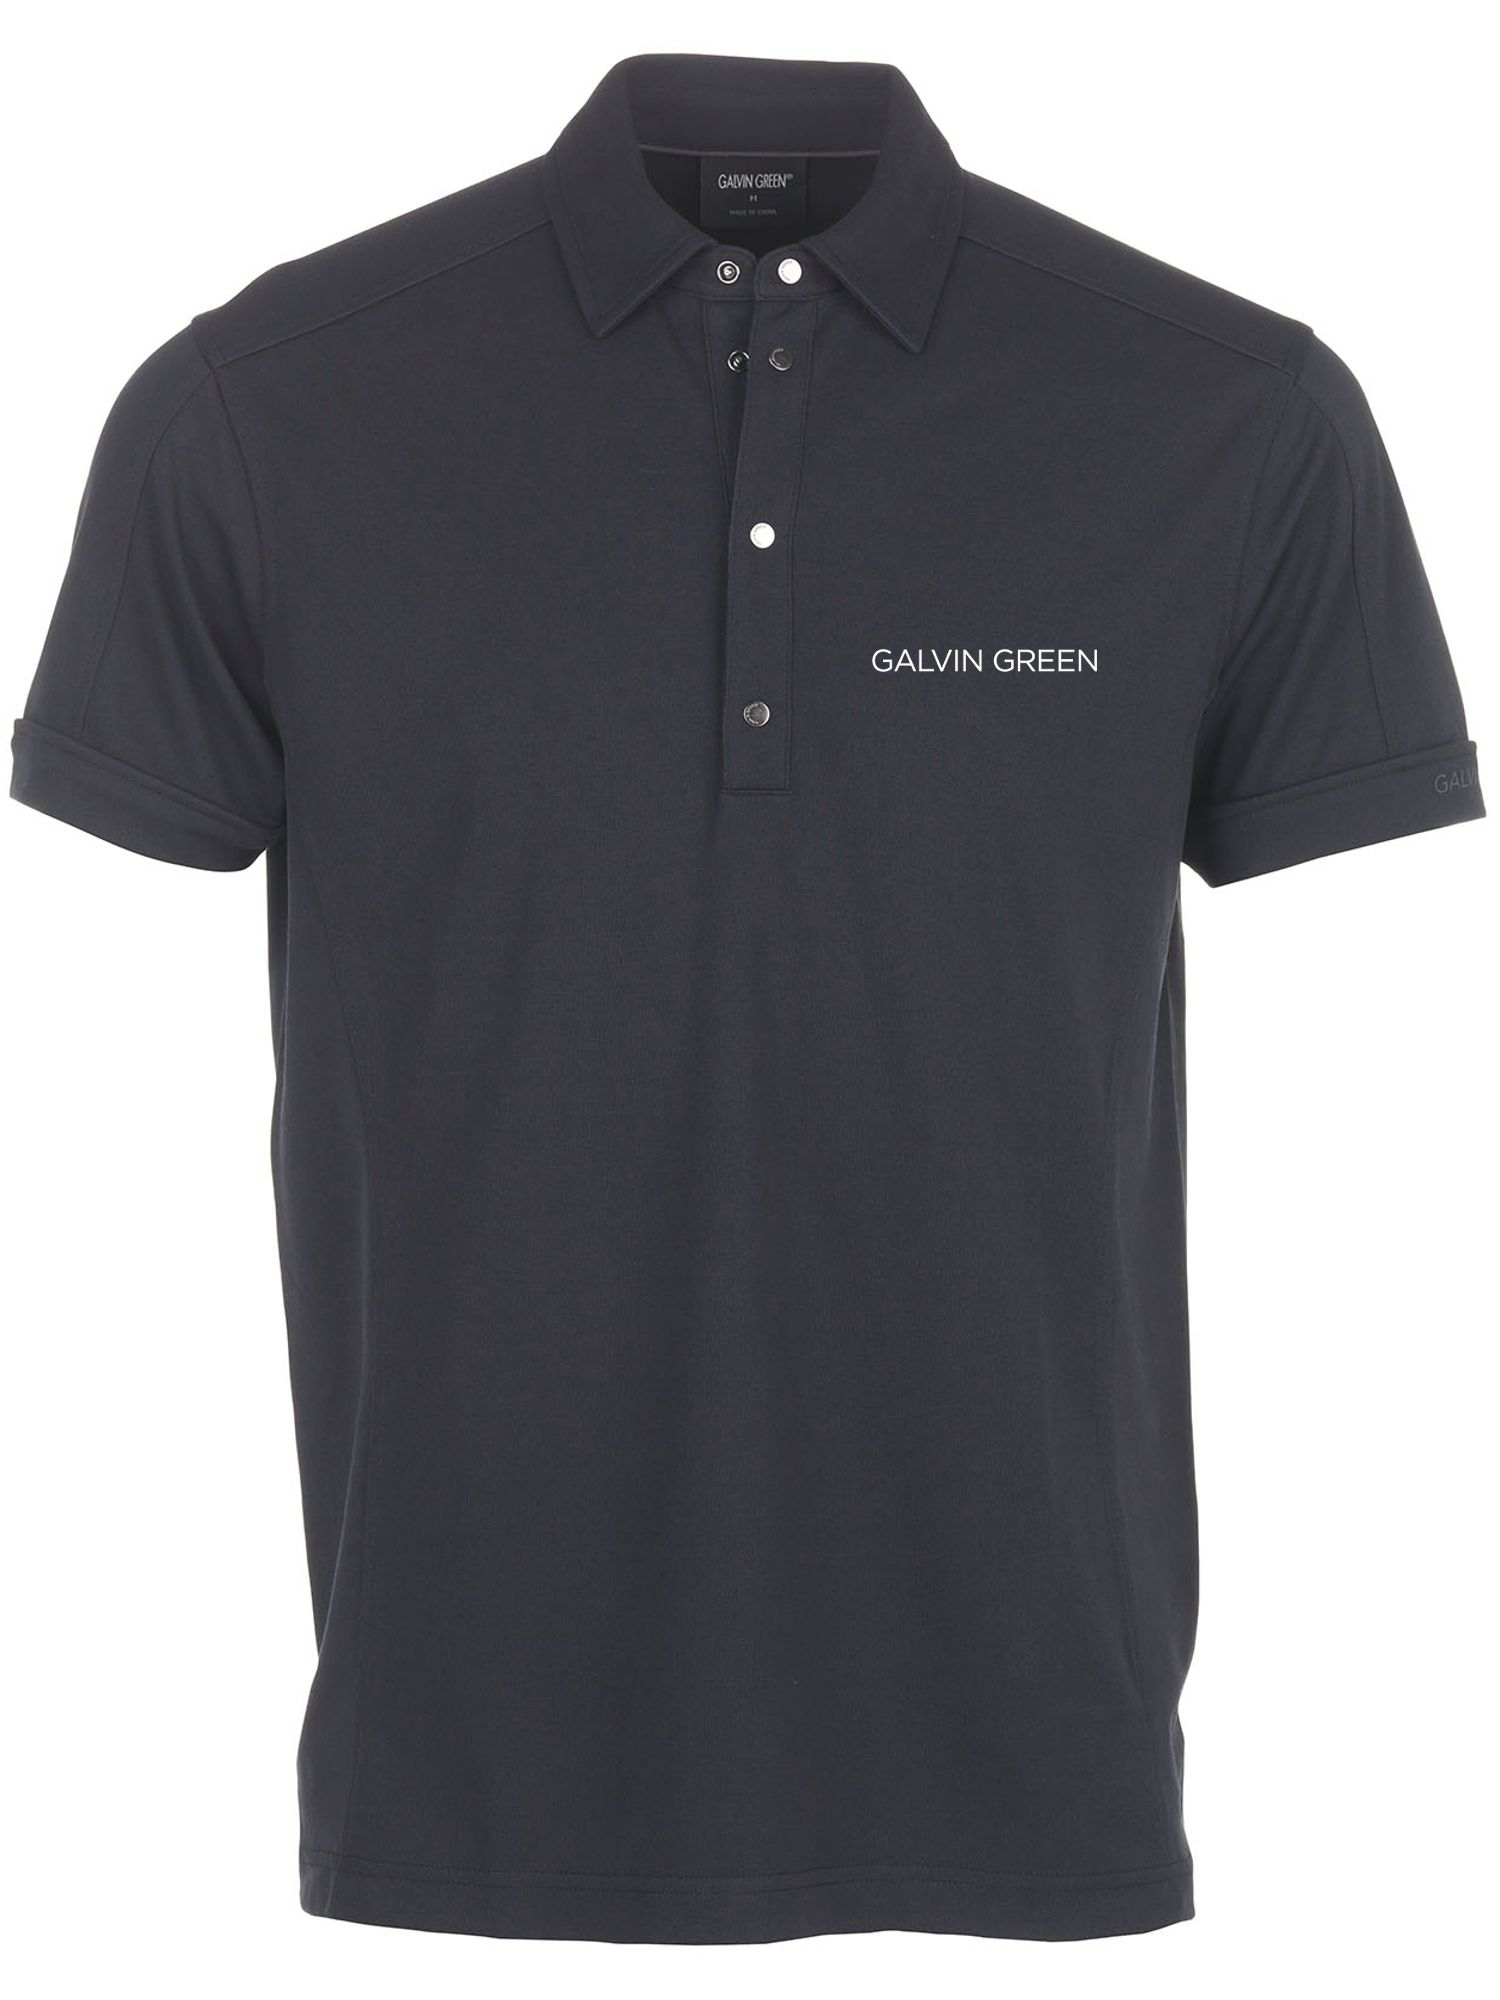 Men's Galvin Green Manley Polo, Black